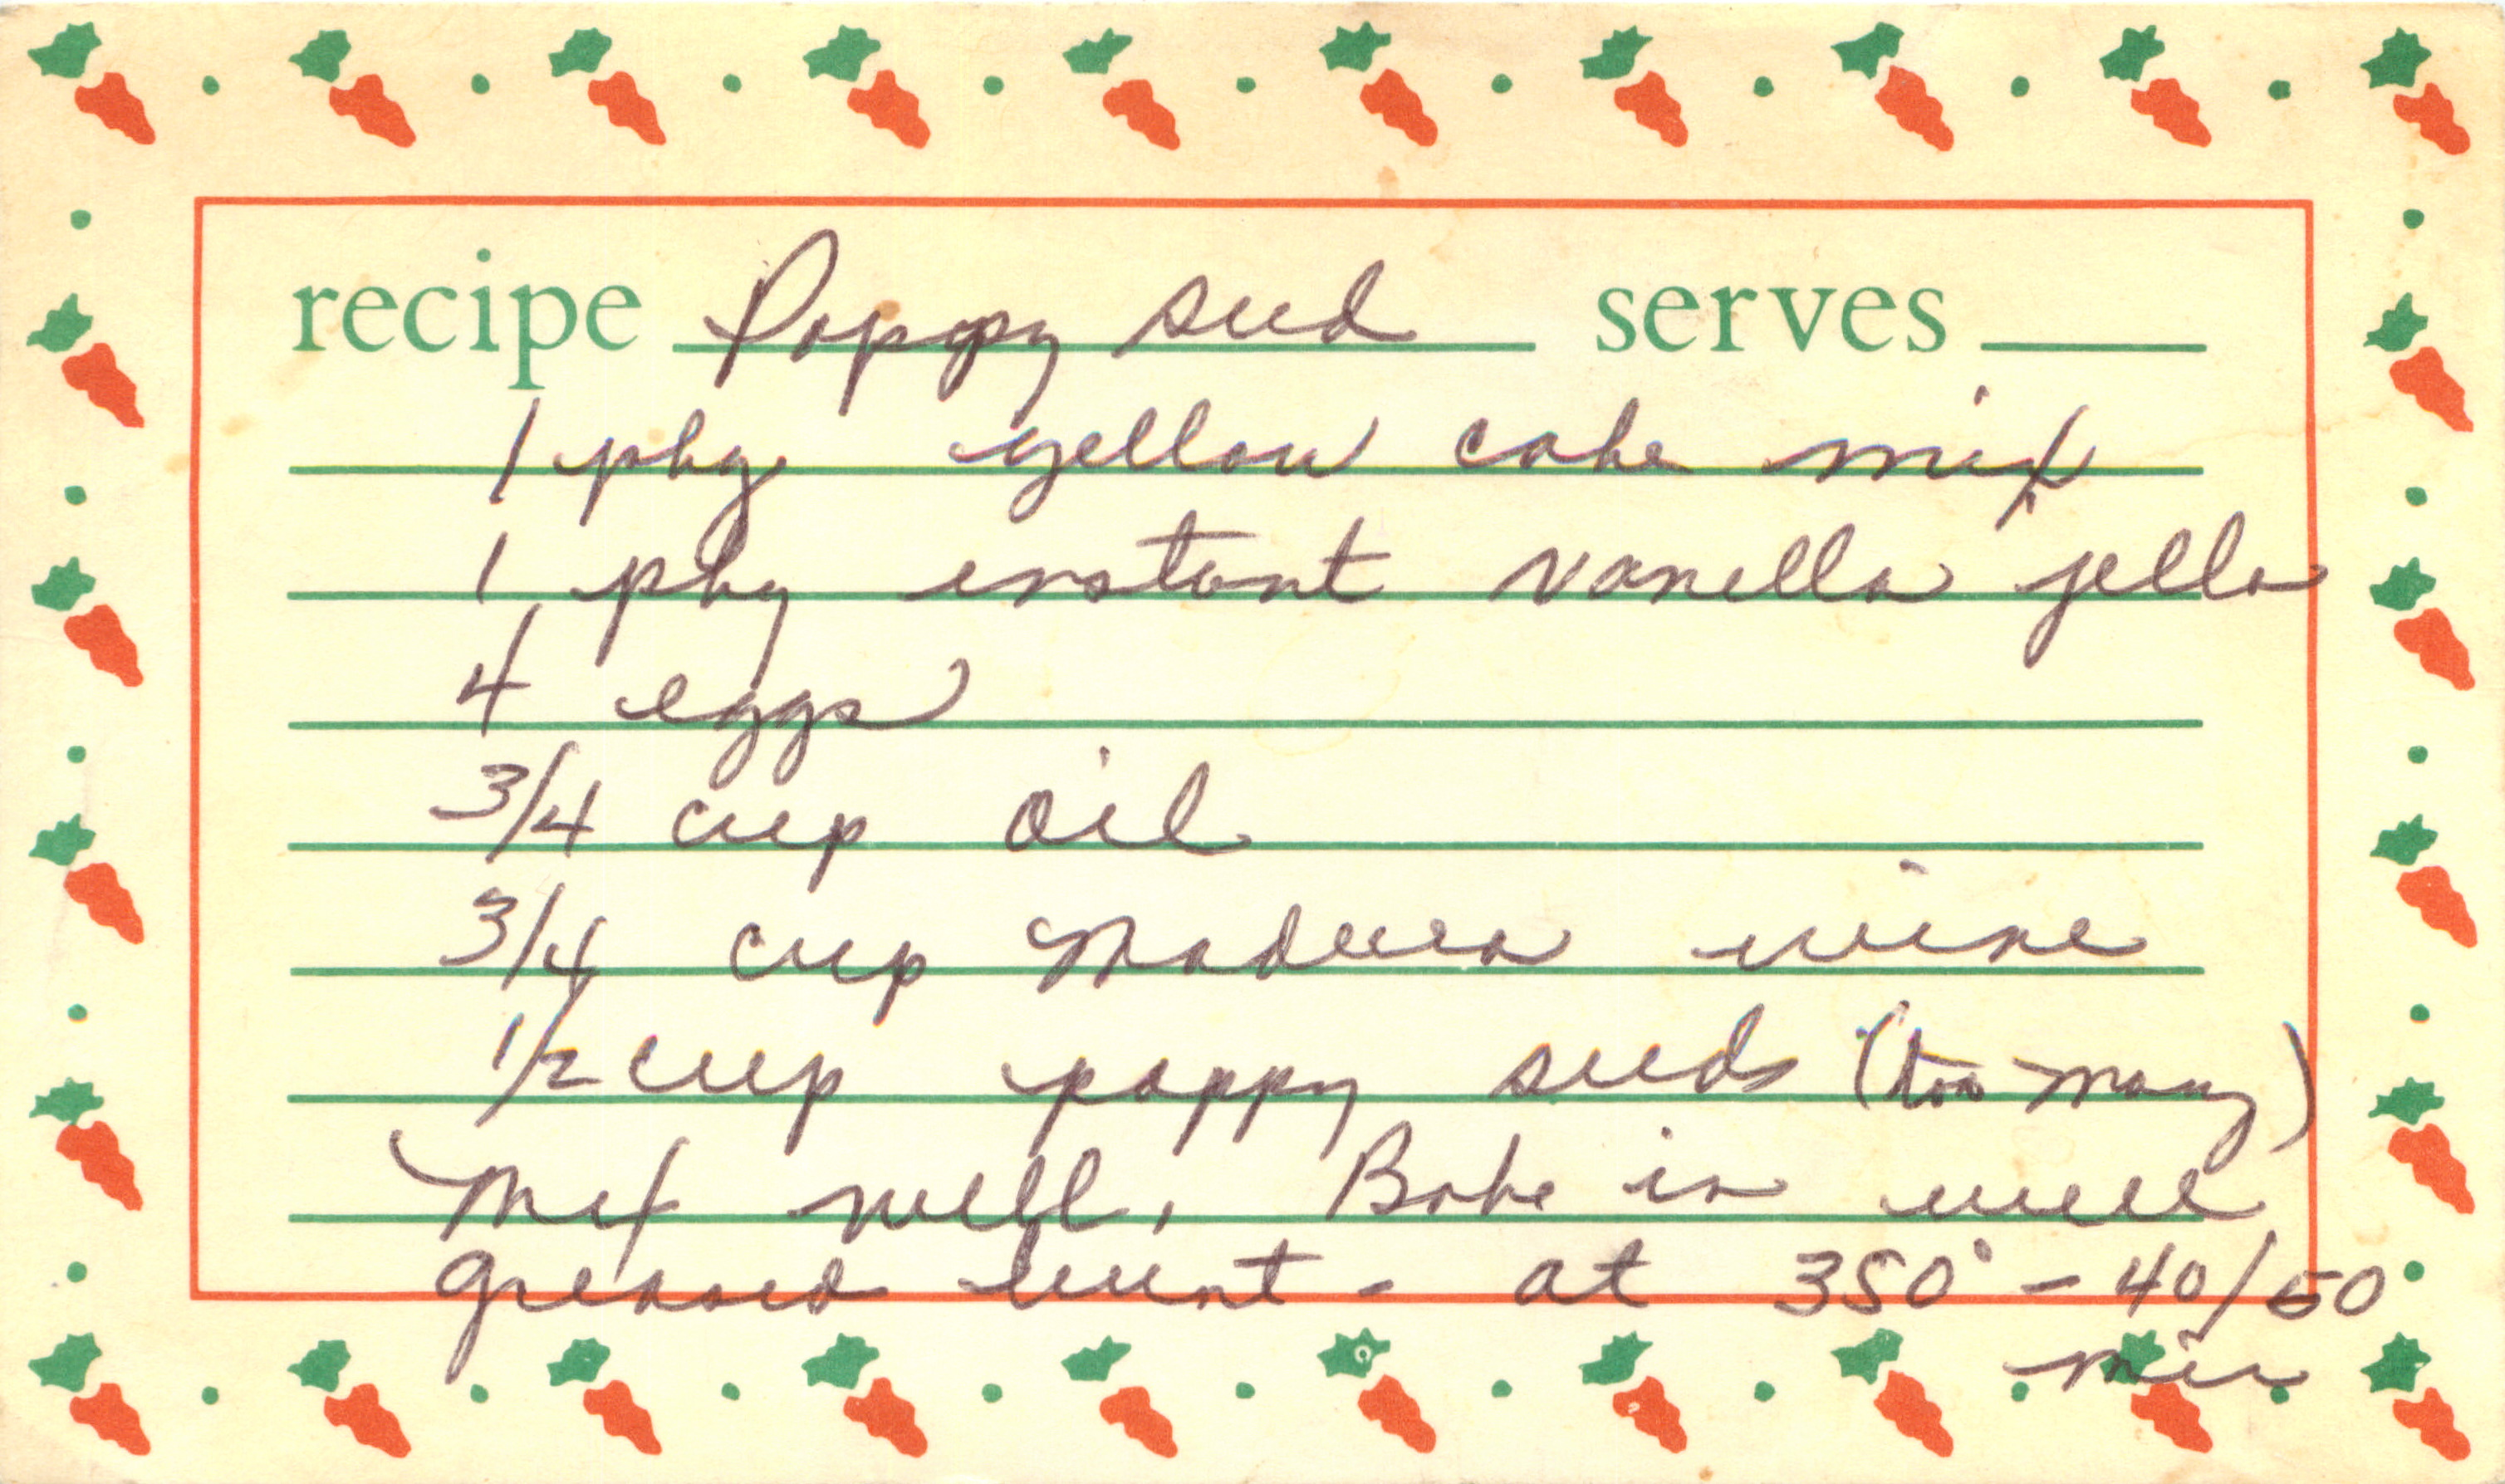 ethel's poppy seed cake recipe card